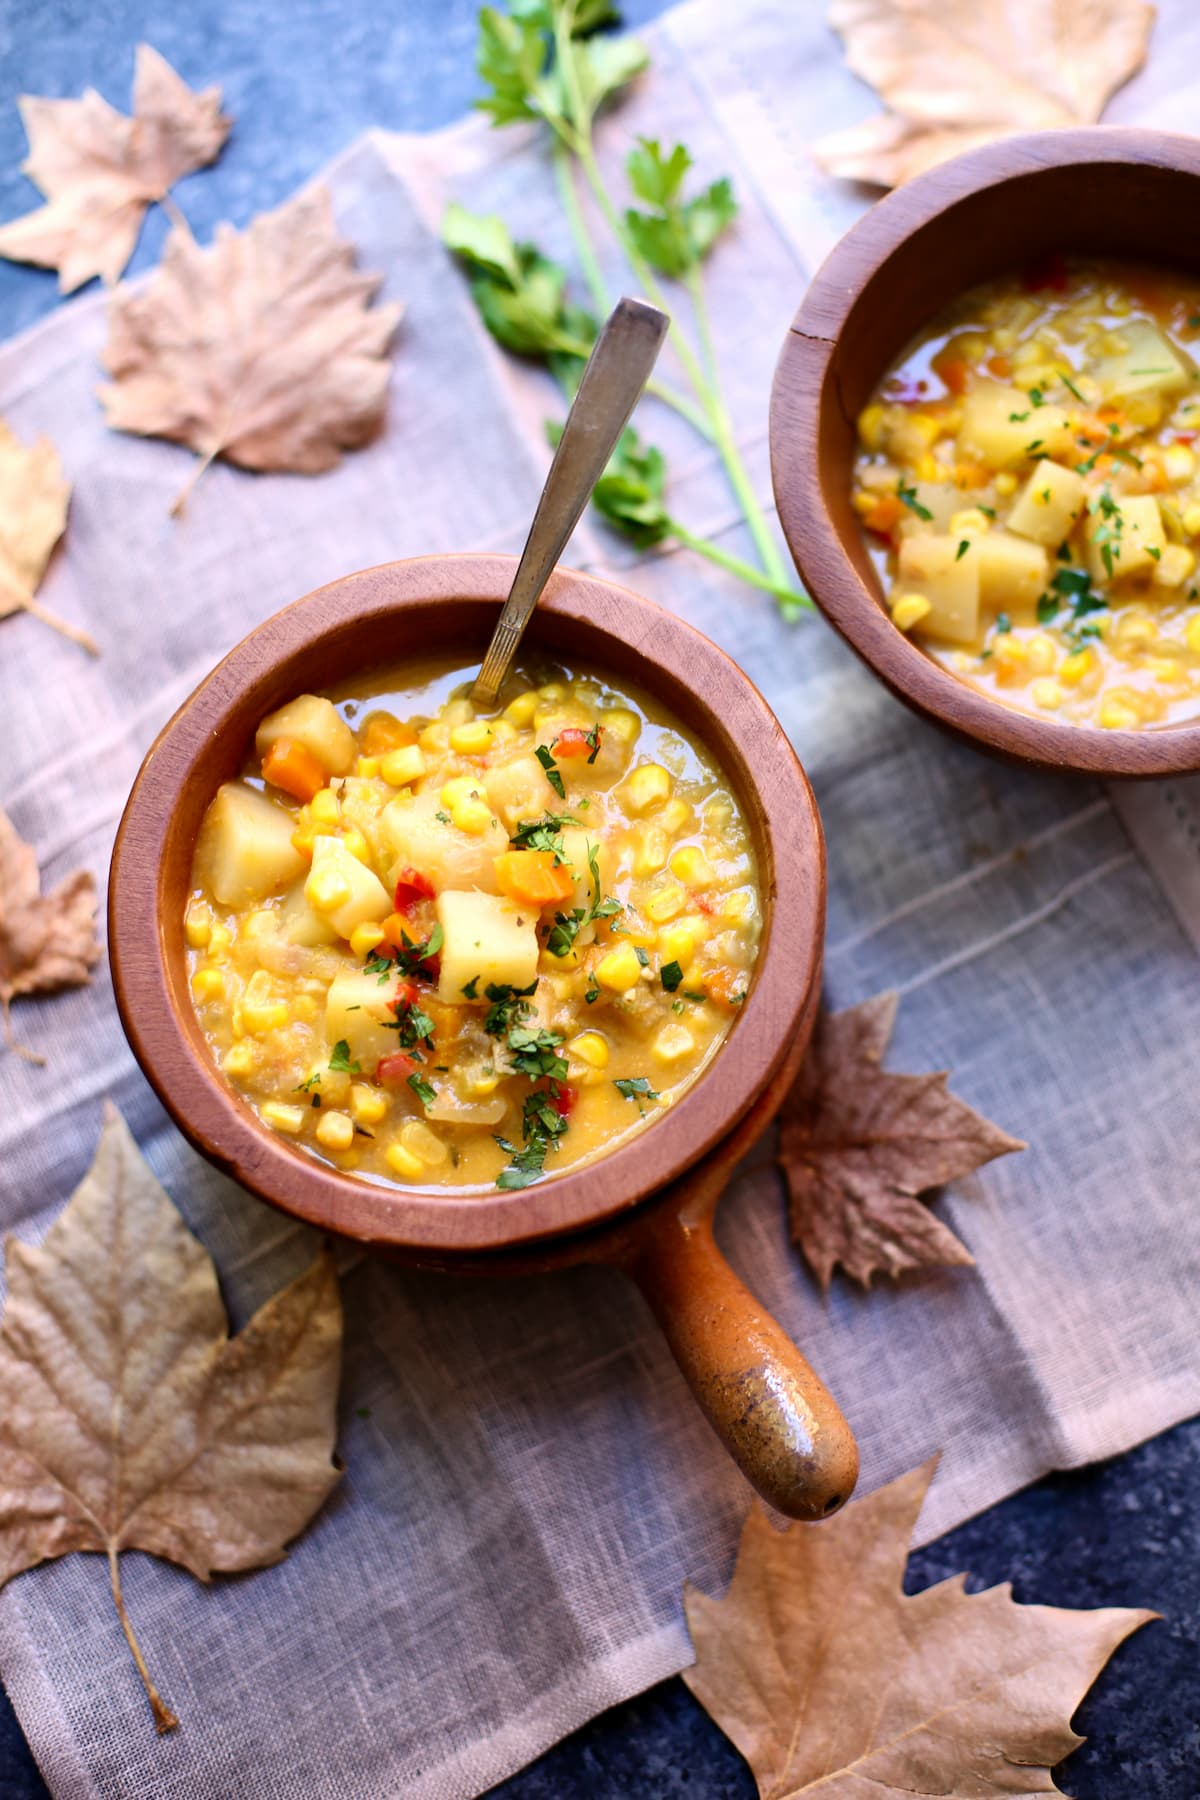 two bowls of corn soup on a table with leaves.